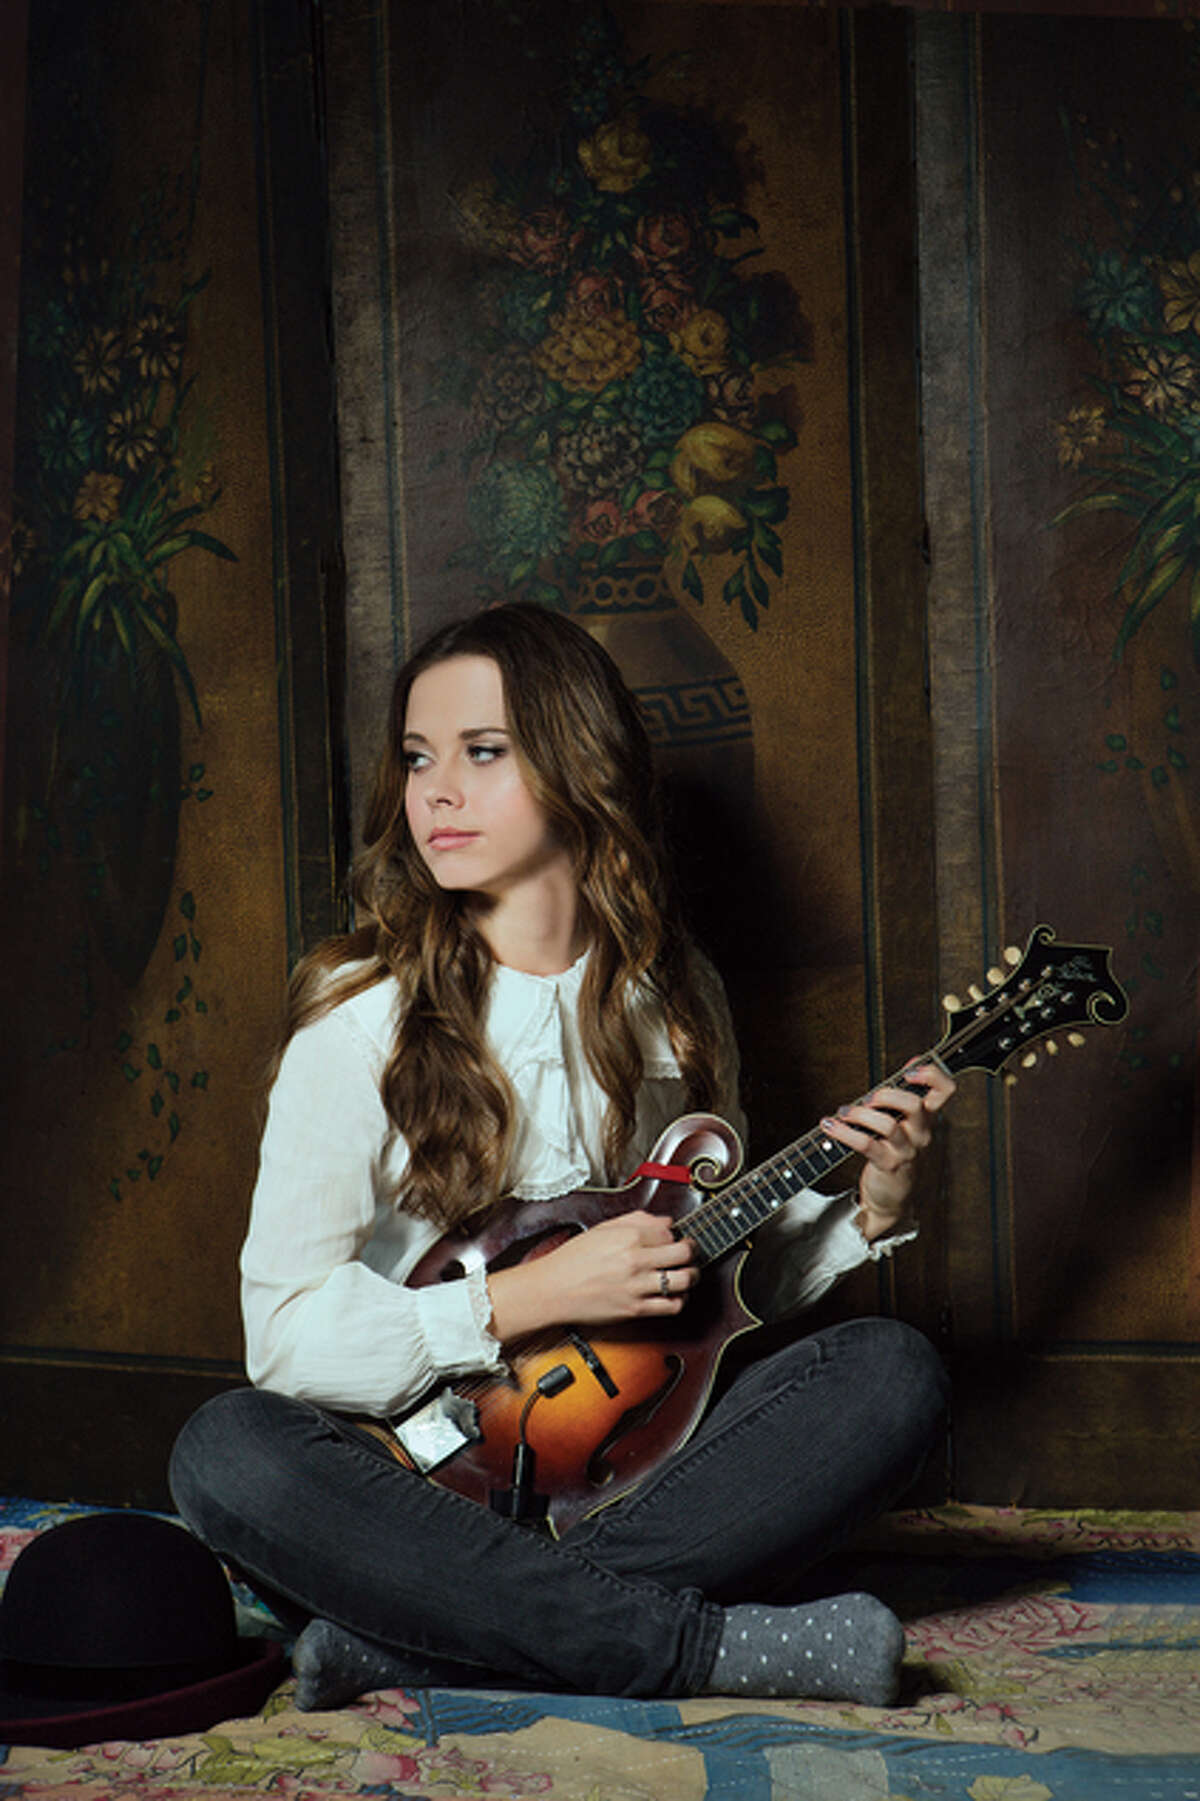 The folk-pop, bluegrass and acoustic music created by nationally know singer, songwriter Sierra Hull will be presented at 7:30 p.m. on Sept. 22 at the WSCC Center Stage Theater as part of the Performing Arts Series.